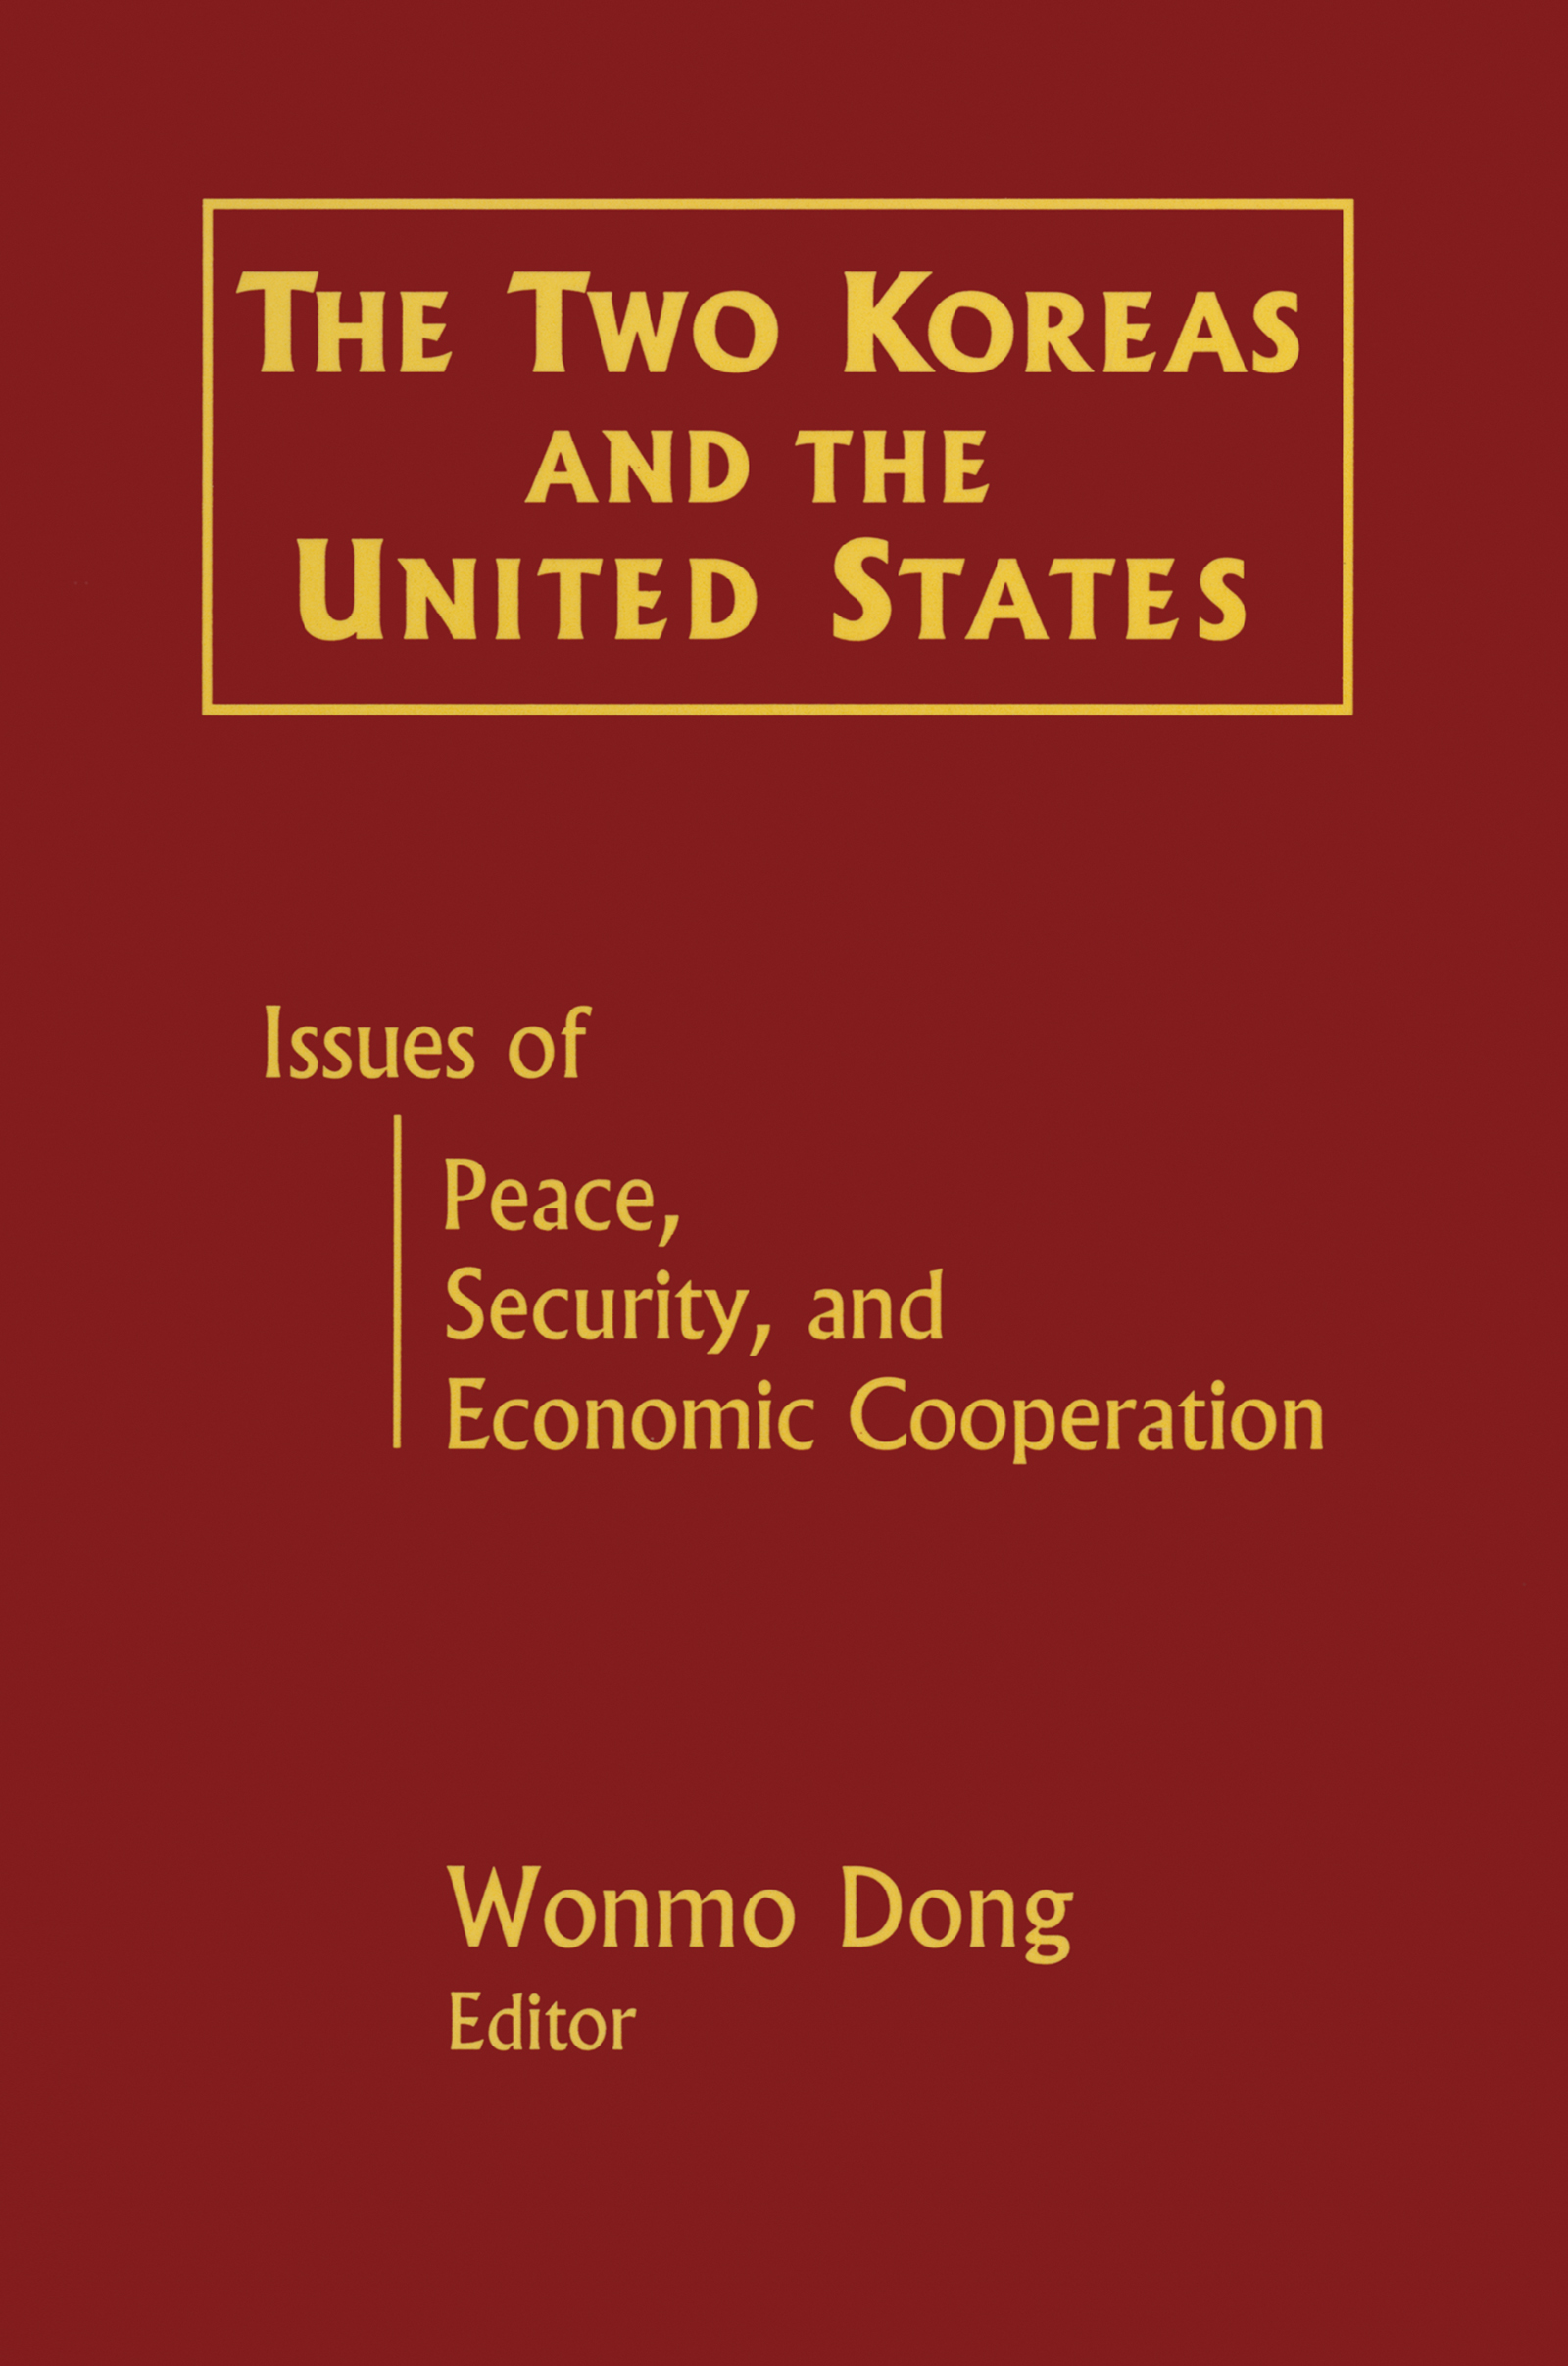 The Two Koreas and the United States: Issues of Peace, Security and Economic Cooperation: Issues of Peace, Security and Economic Cooperation, 1st Edition (Paperback) book cover